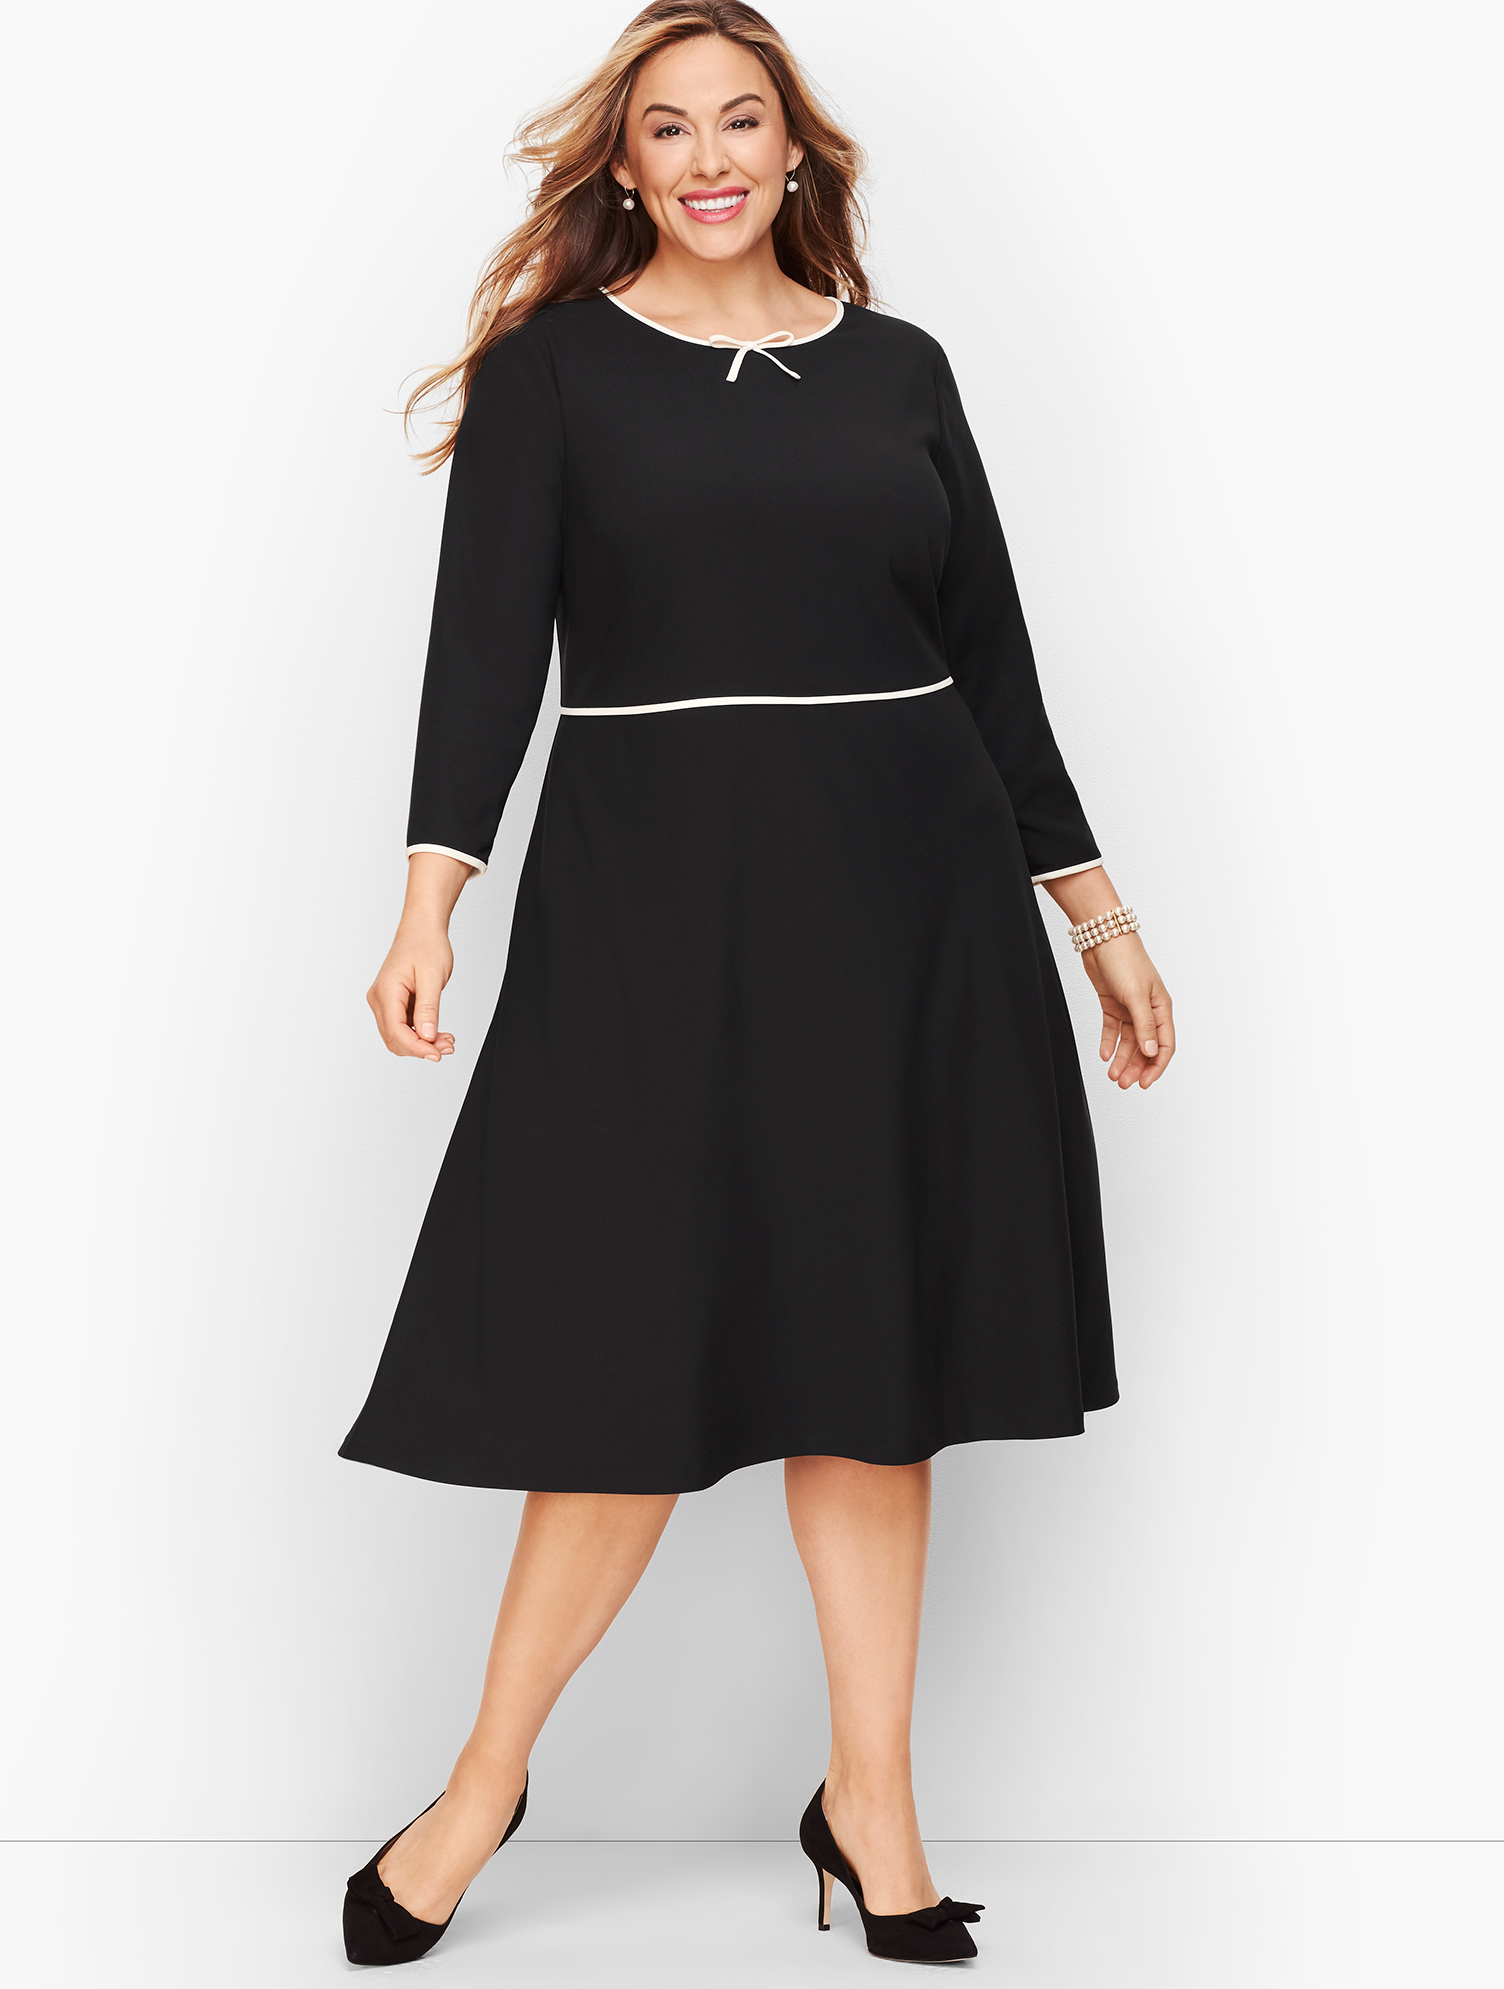 60s 70s Plus Size Dresses, Clothing, Costumes Tipped Colorblock Fit  Flare Dress - Black - 16 Talbots $159.99 AT vintagedancer.com